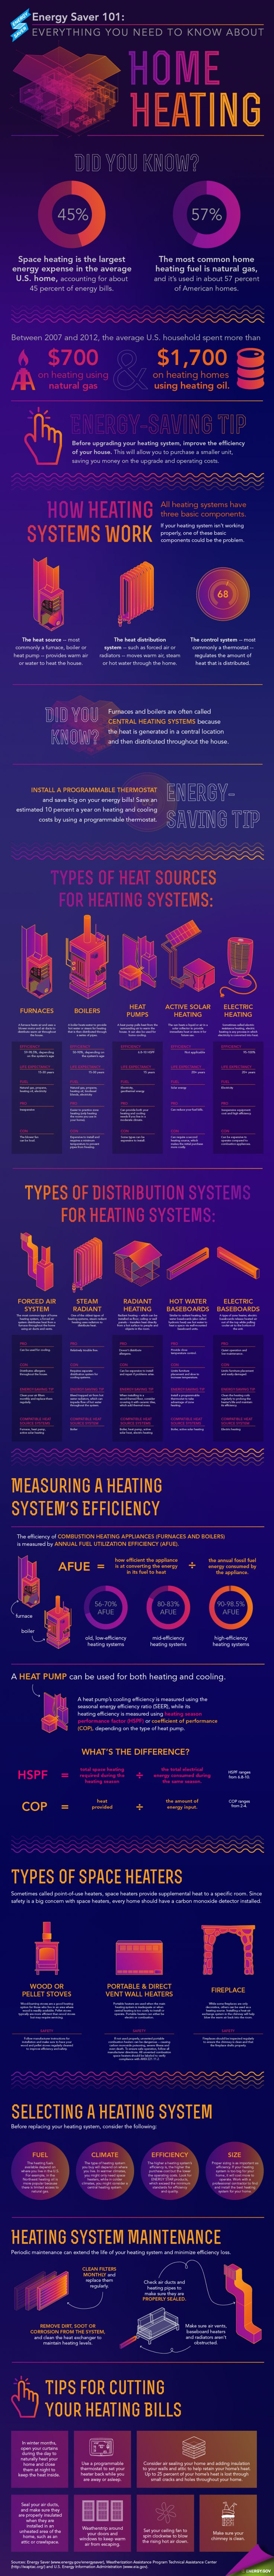 "Our new Energy Saver 101 infographic lays out everything you need to know about home heating -- from how heating systems work and the different types on the market to what to look for when replacing your system and proper maintenance. Download a <a href=""/node/784286"">high-resolution version</a> of the infographic or individual sections. 